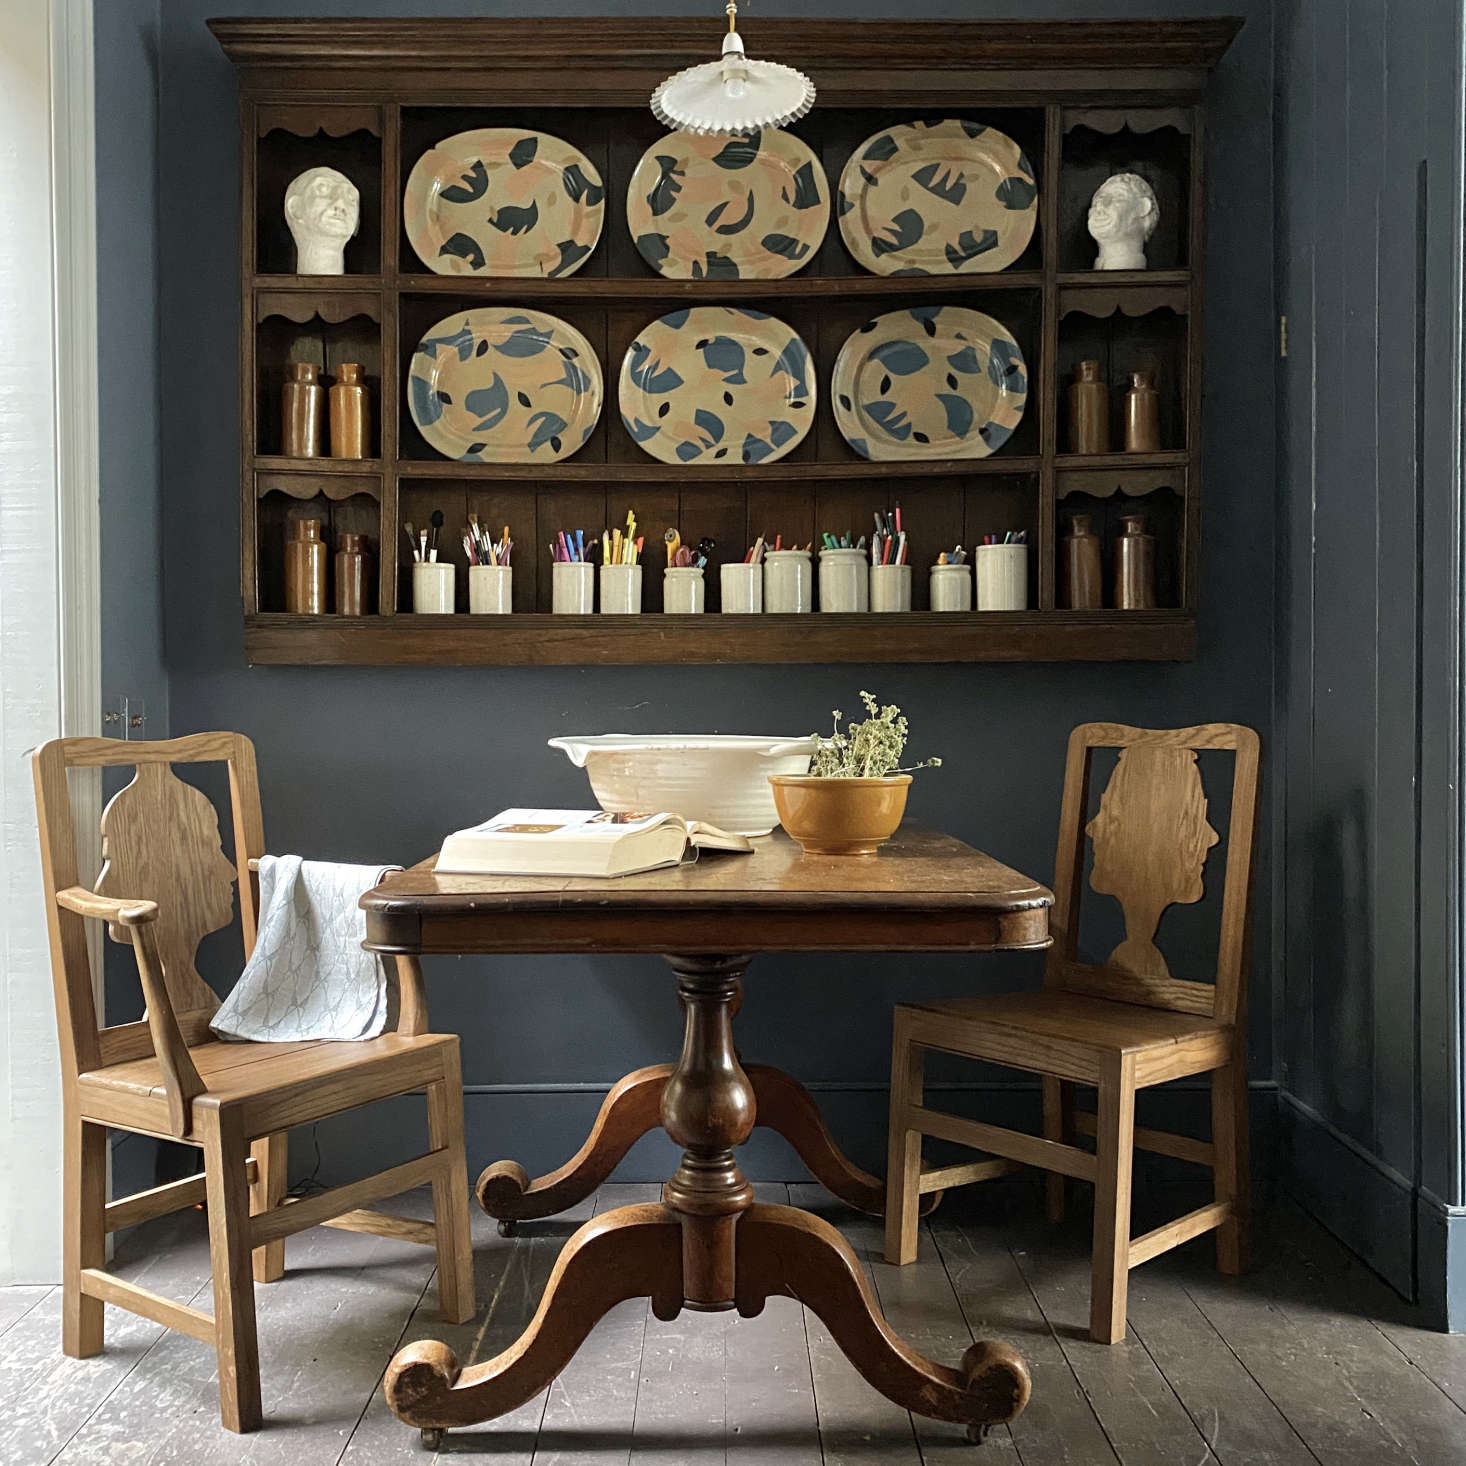 An antique table had to be adapted in width to fit the compact dining area. The chairs are Berdoulat&#8